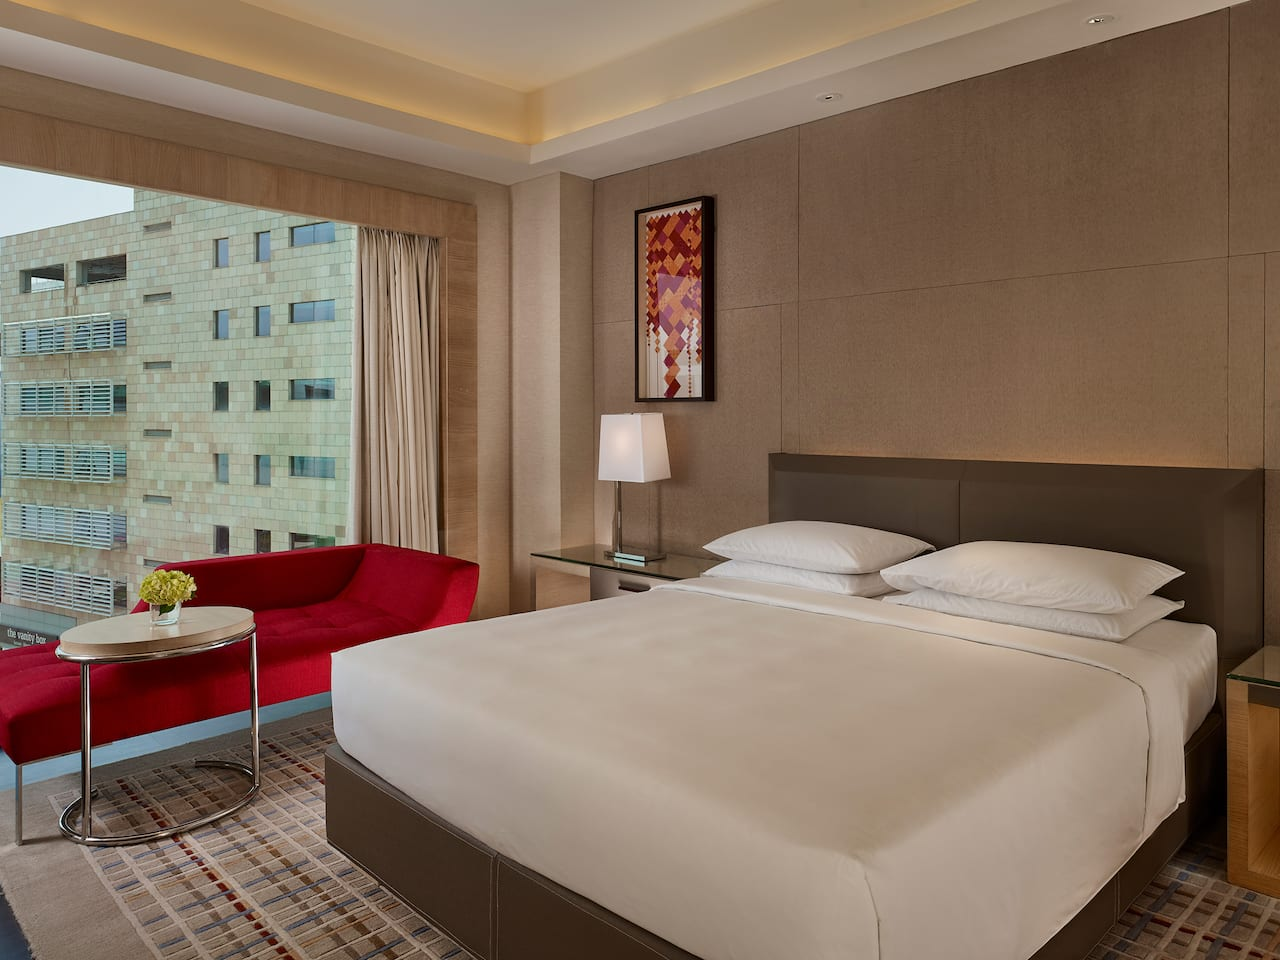 King sized bed by large window in hotel suite